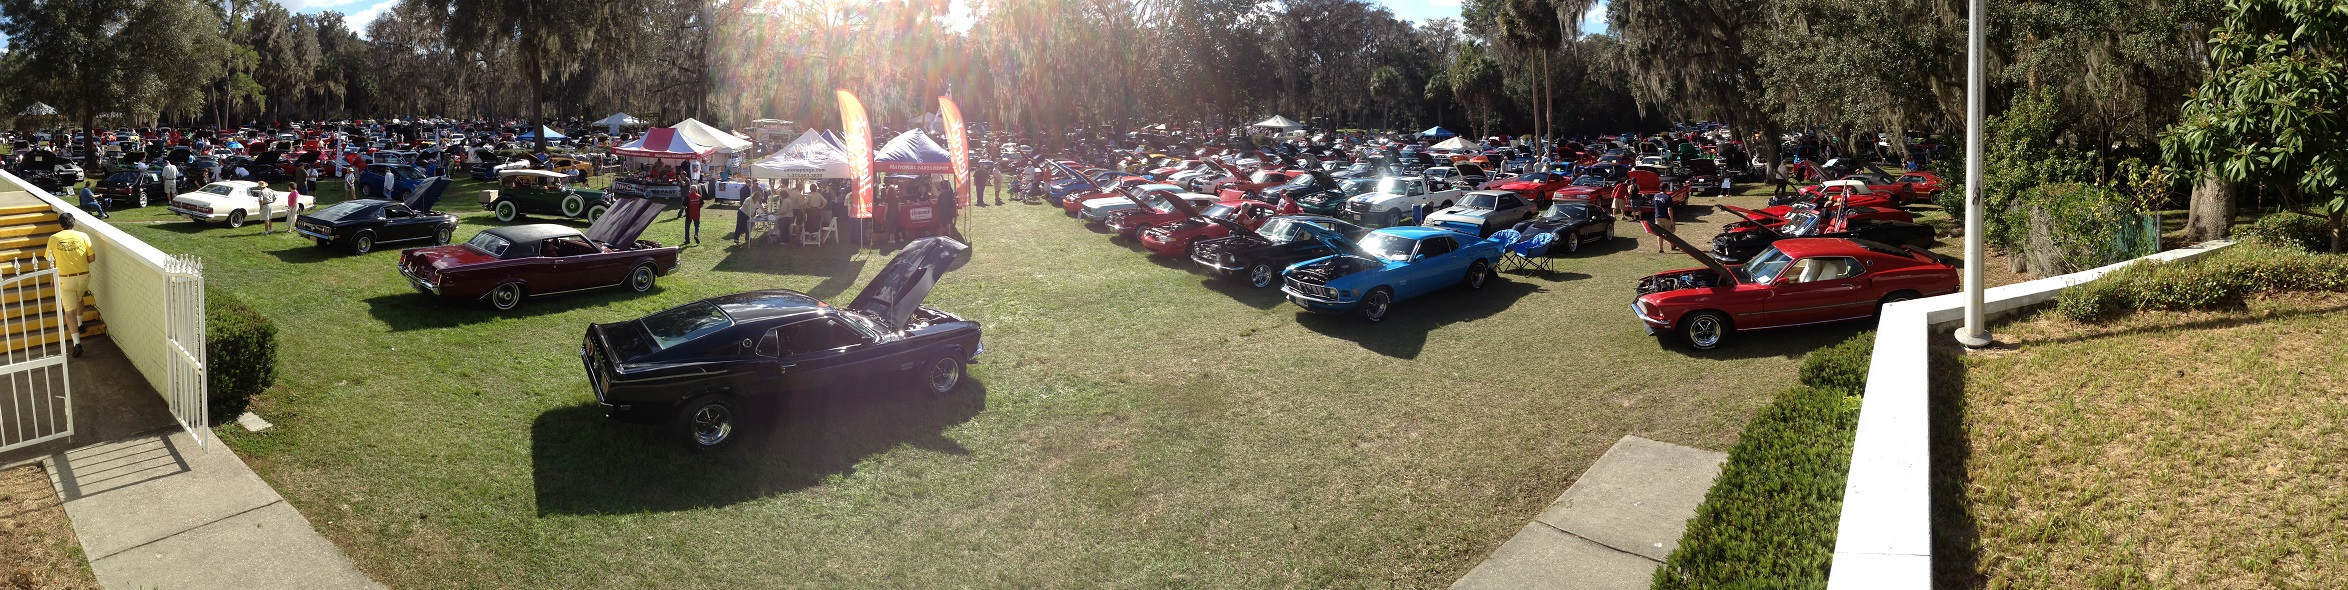 Click image for larger version  Name:Mustangs Stick Together.jpg Views:115 Size:850.1 KB ID:179809